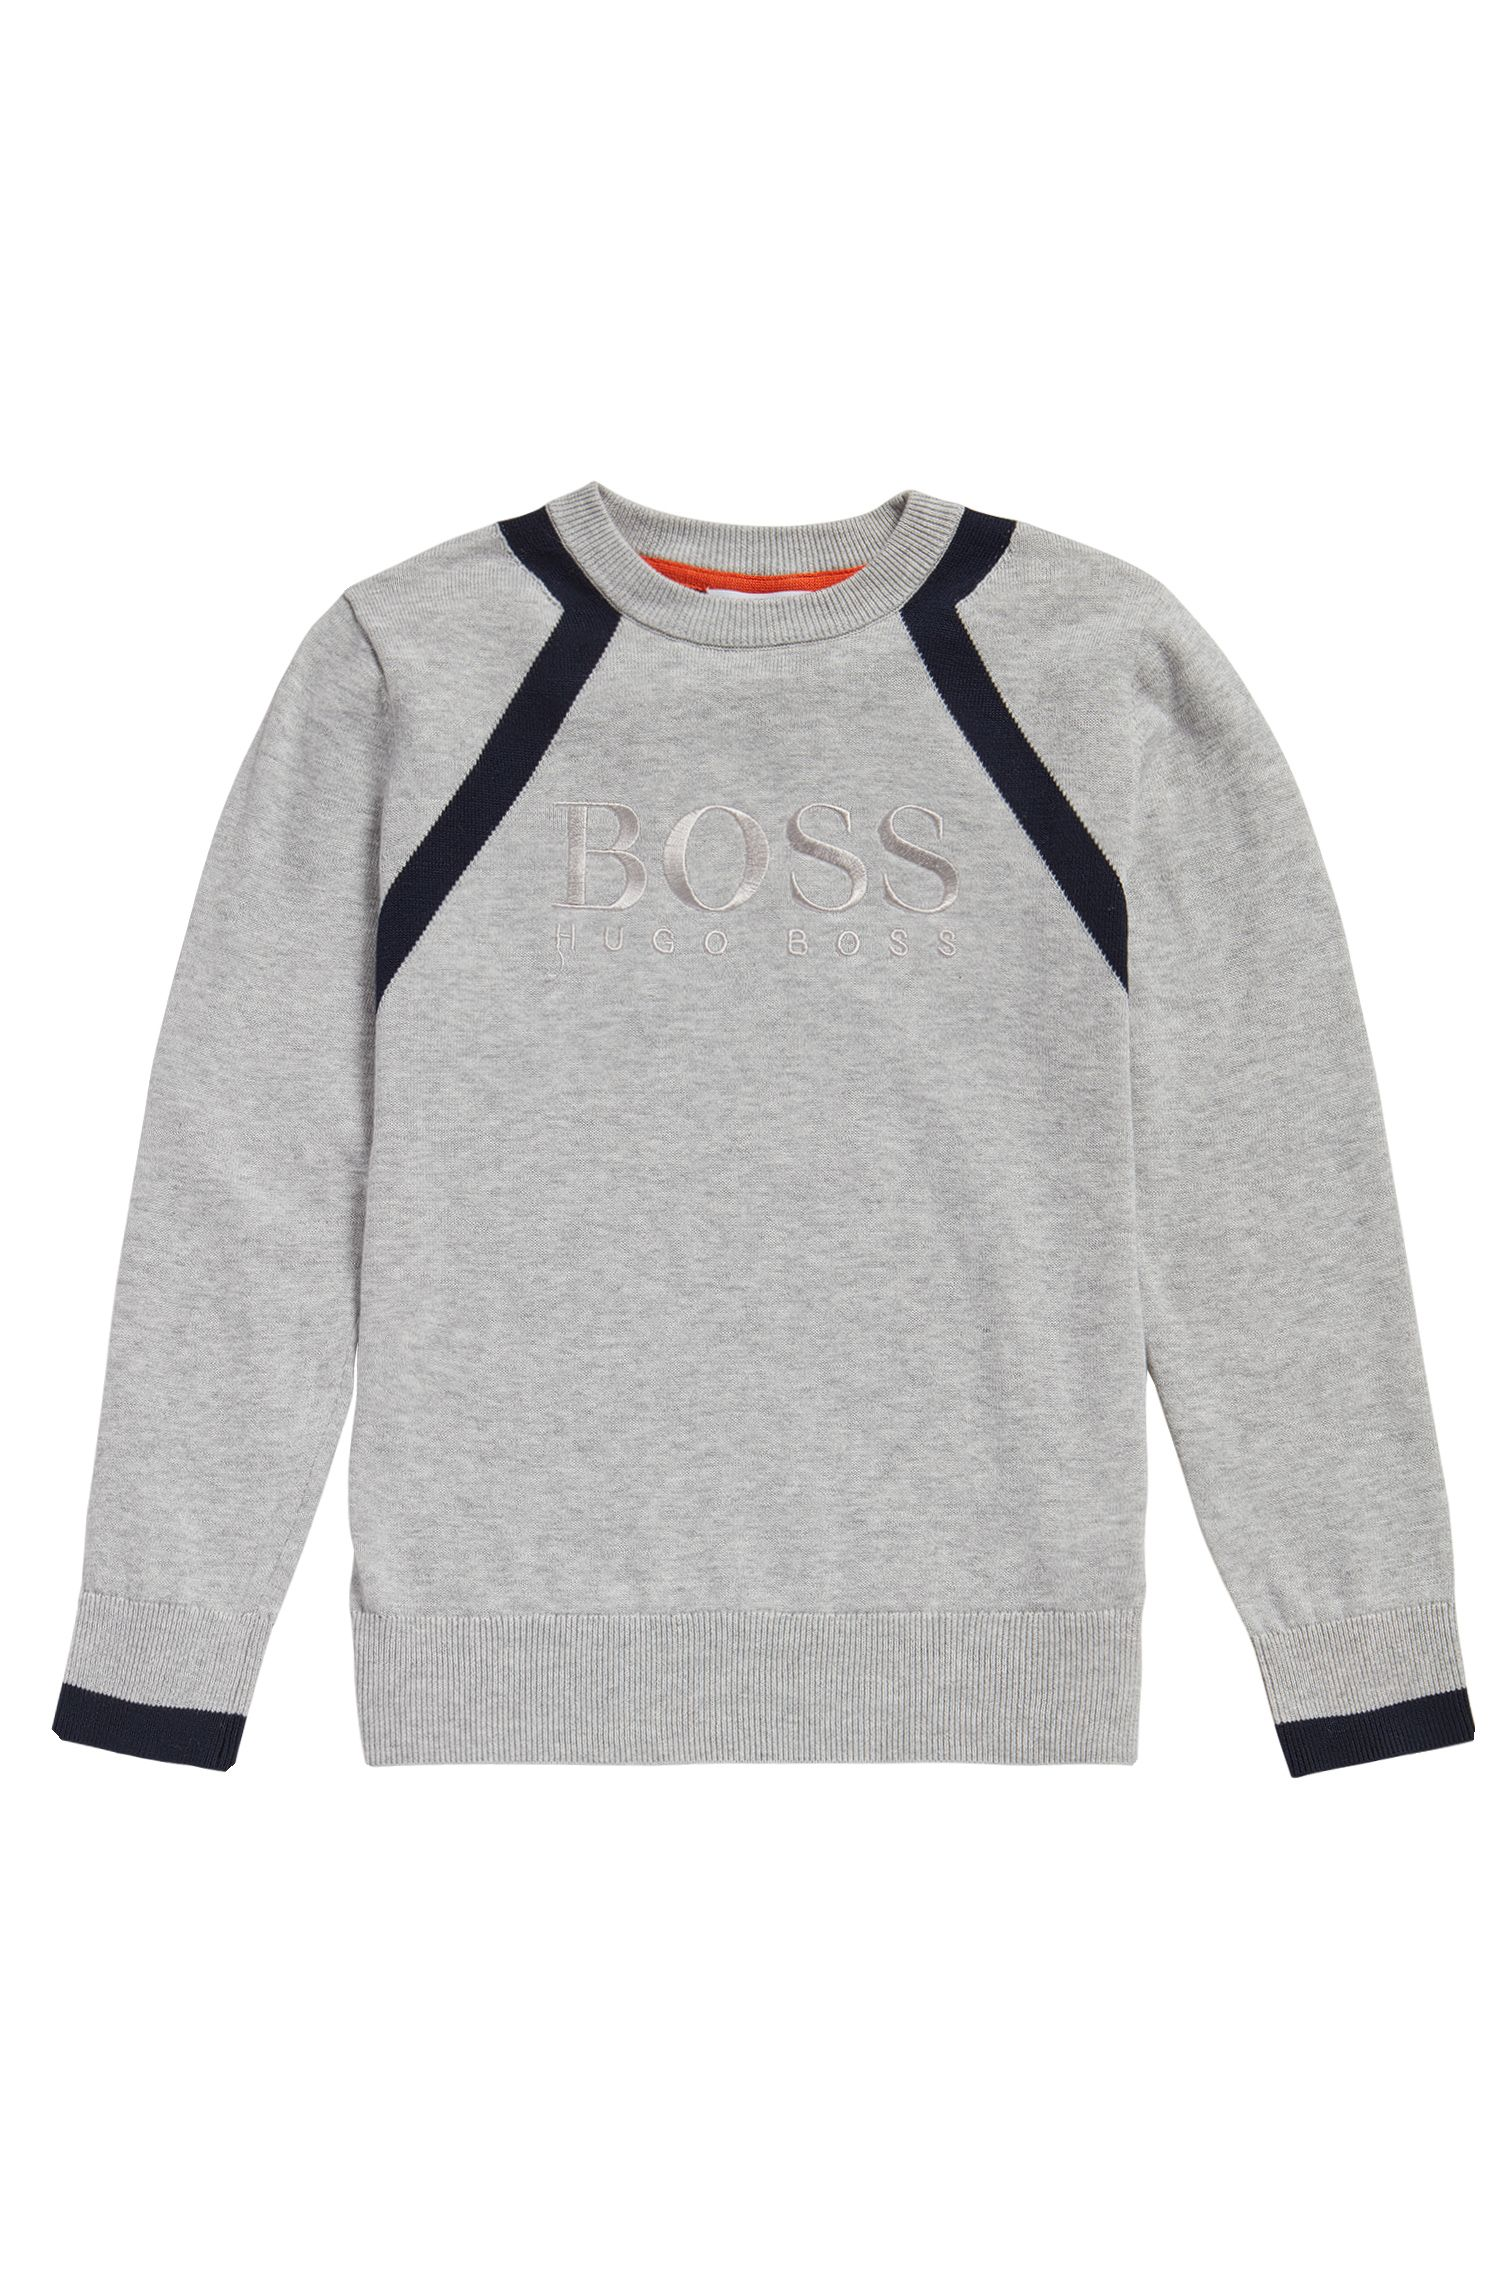 Kids-Pullover aus Baumwolle in Melange-Optik: 'J25982'